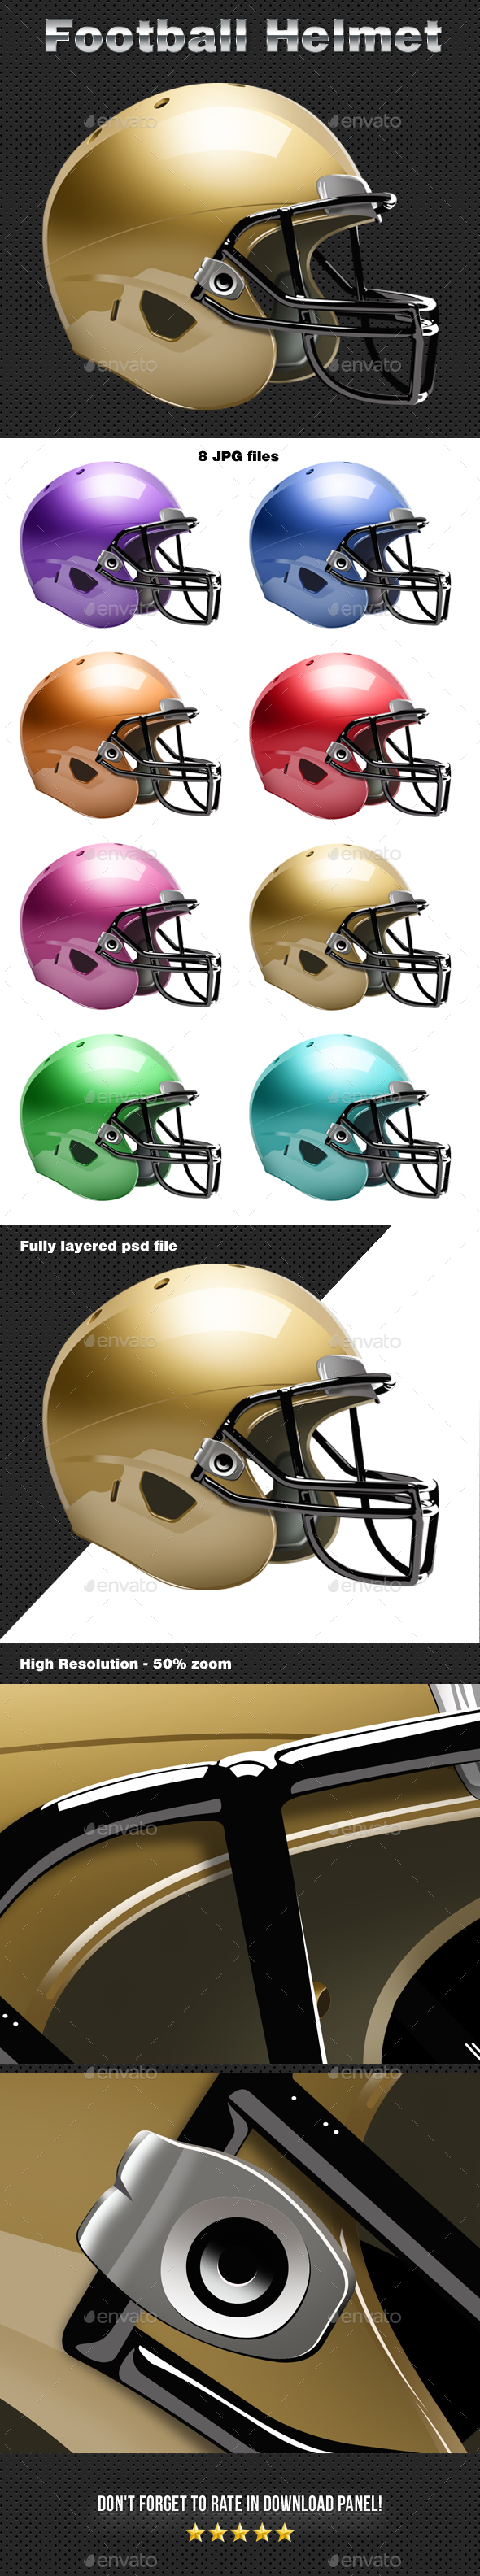 Football Helmet - Objects Illustrations